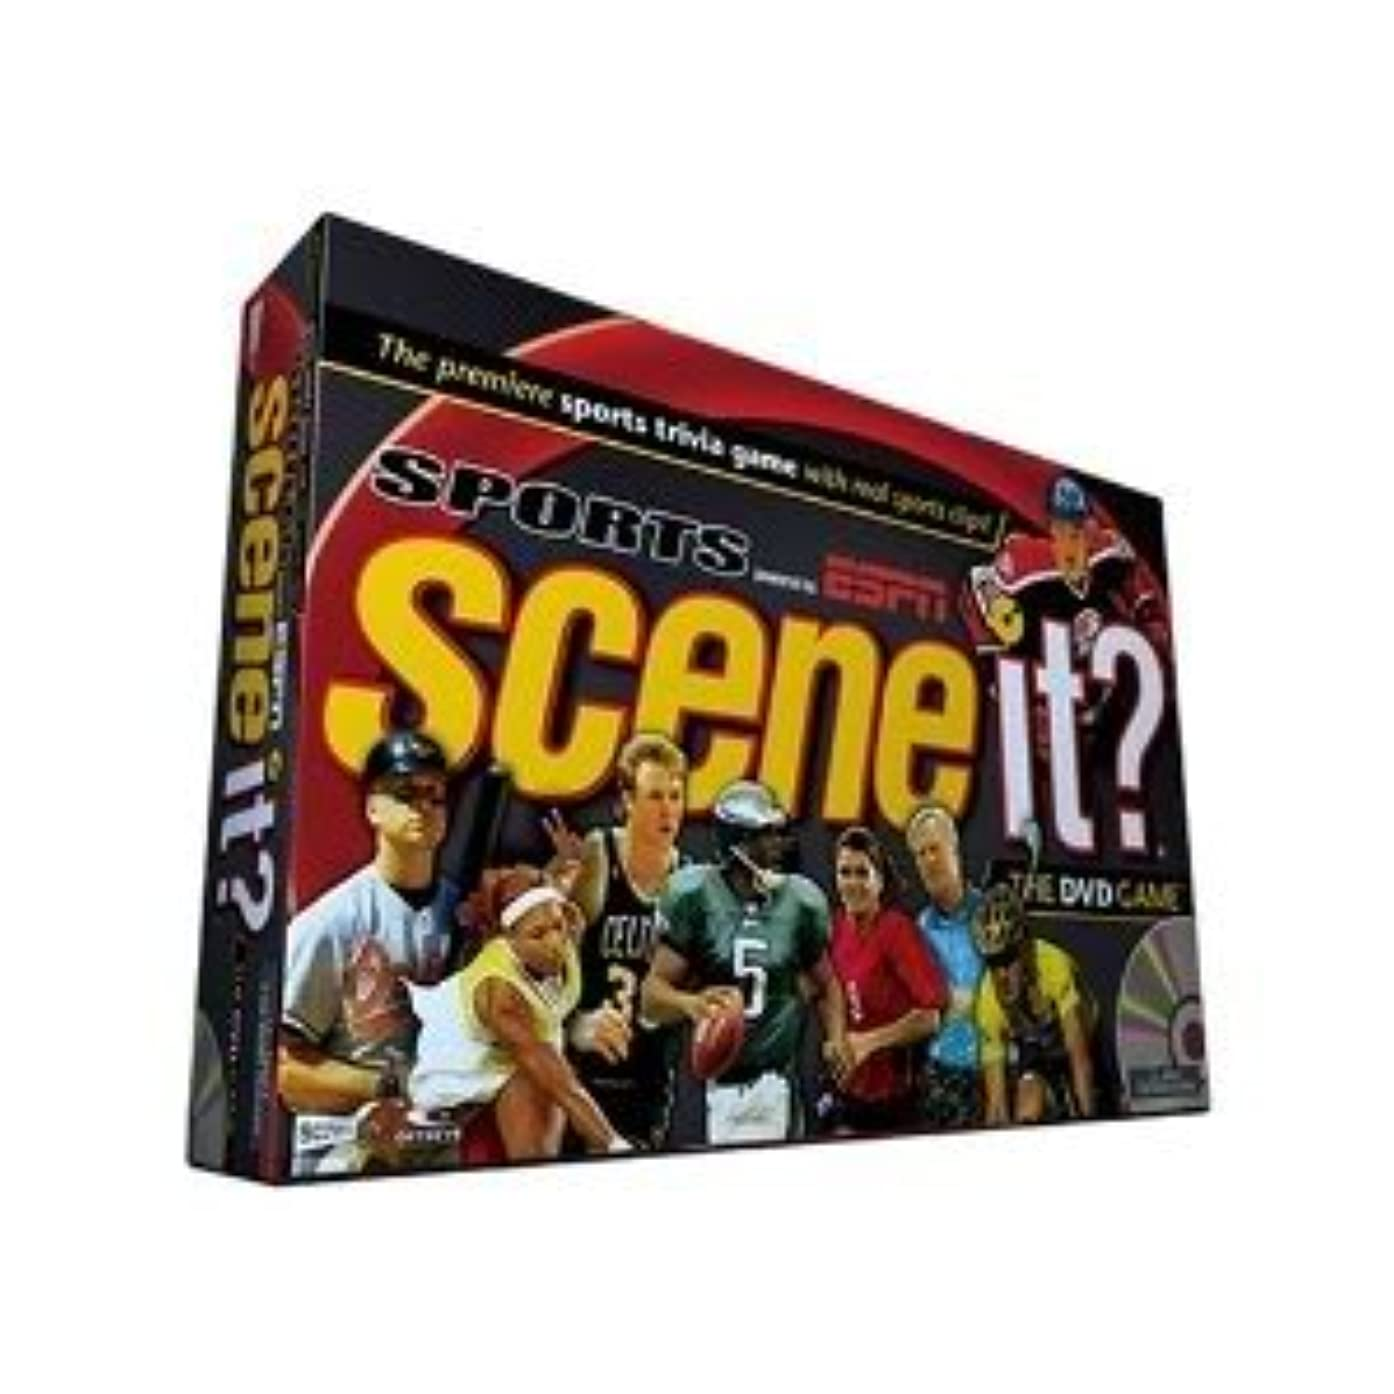 Toy / Game Scene It? Sports Powered By Espn With Movie Clips And On-Screen Challenges - For The Ultimate Fan! by 4KIDS